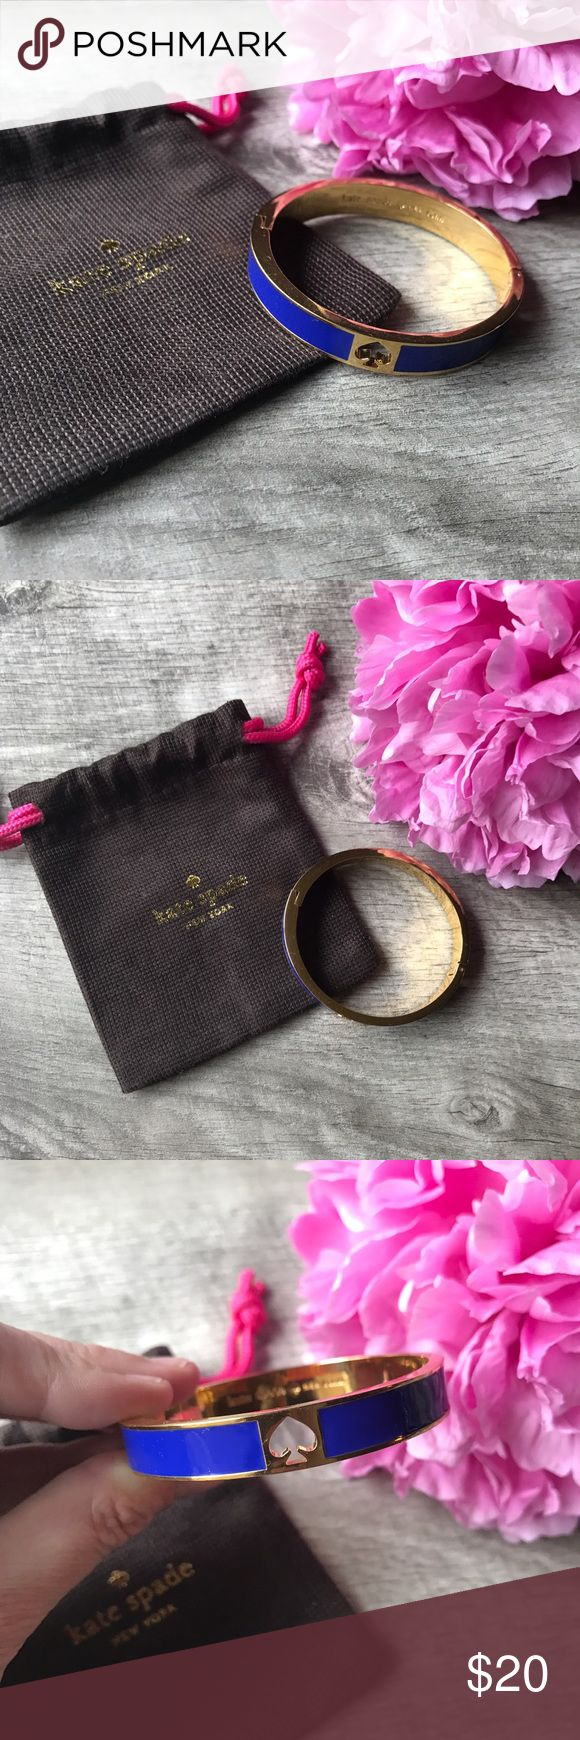 Kate Spade ♠️ Bangle Perfect simple bangle with the Kate Spade ♠️! Includes dust bag. Magnetic latch closure. Perfect for the lady that loves bangle bracelets, but may need better fit! Worn once. No trades. kate spade Jewelry Bracelets